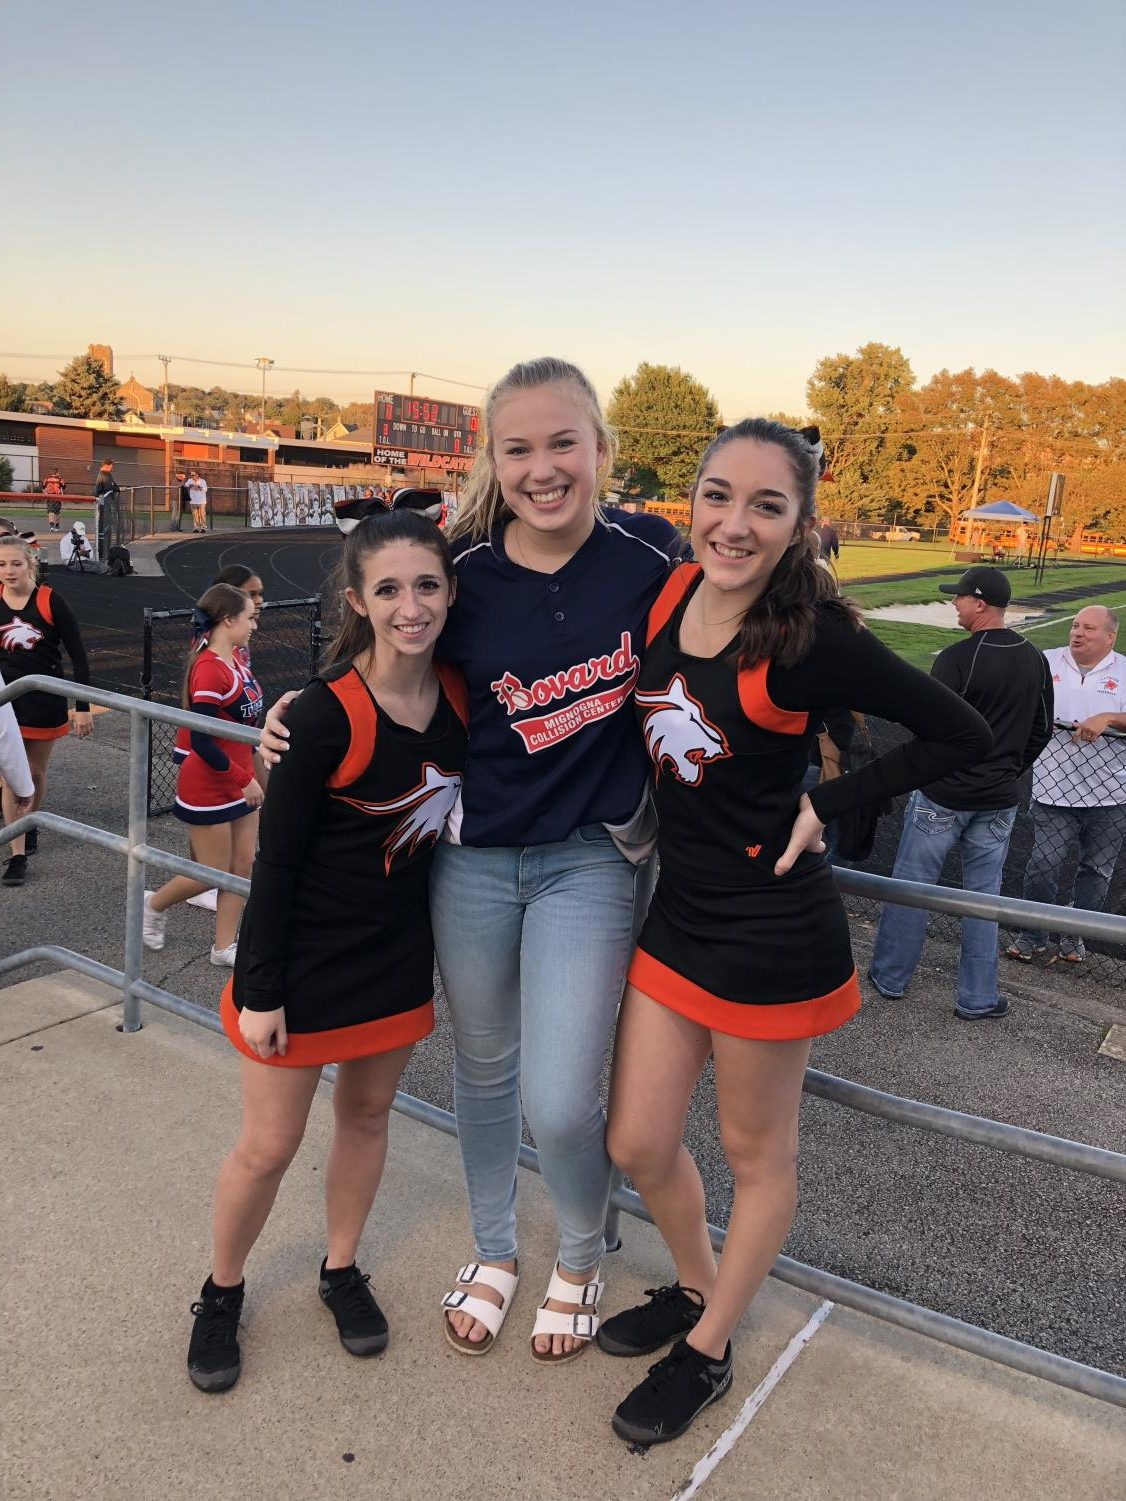 Maura Casey (left) and Bailey Siko (right) joined by friend Amelia Enfinger before the game on September 29, 2018.